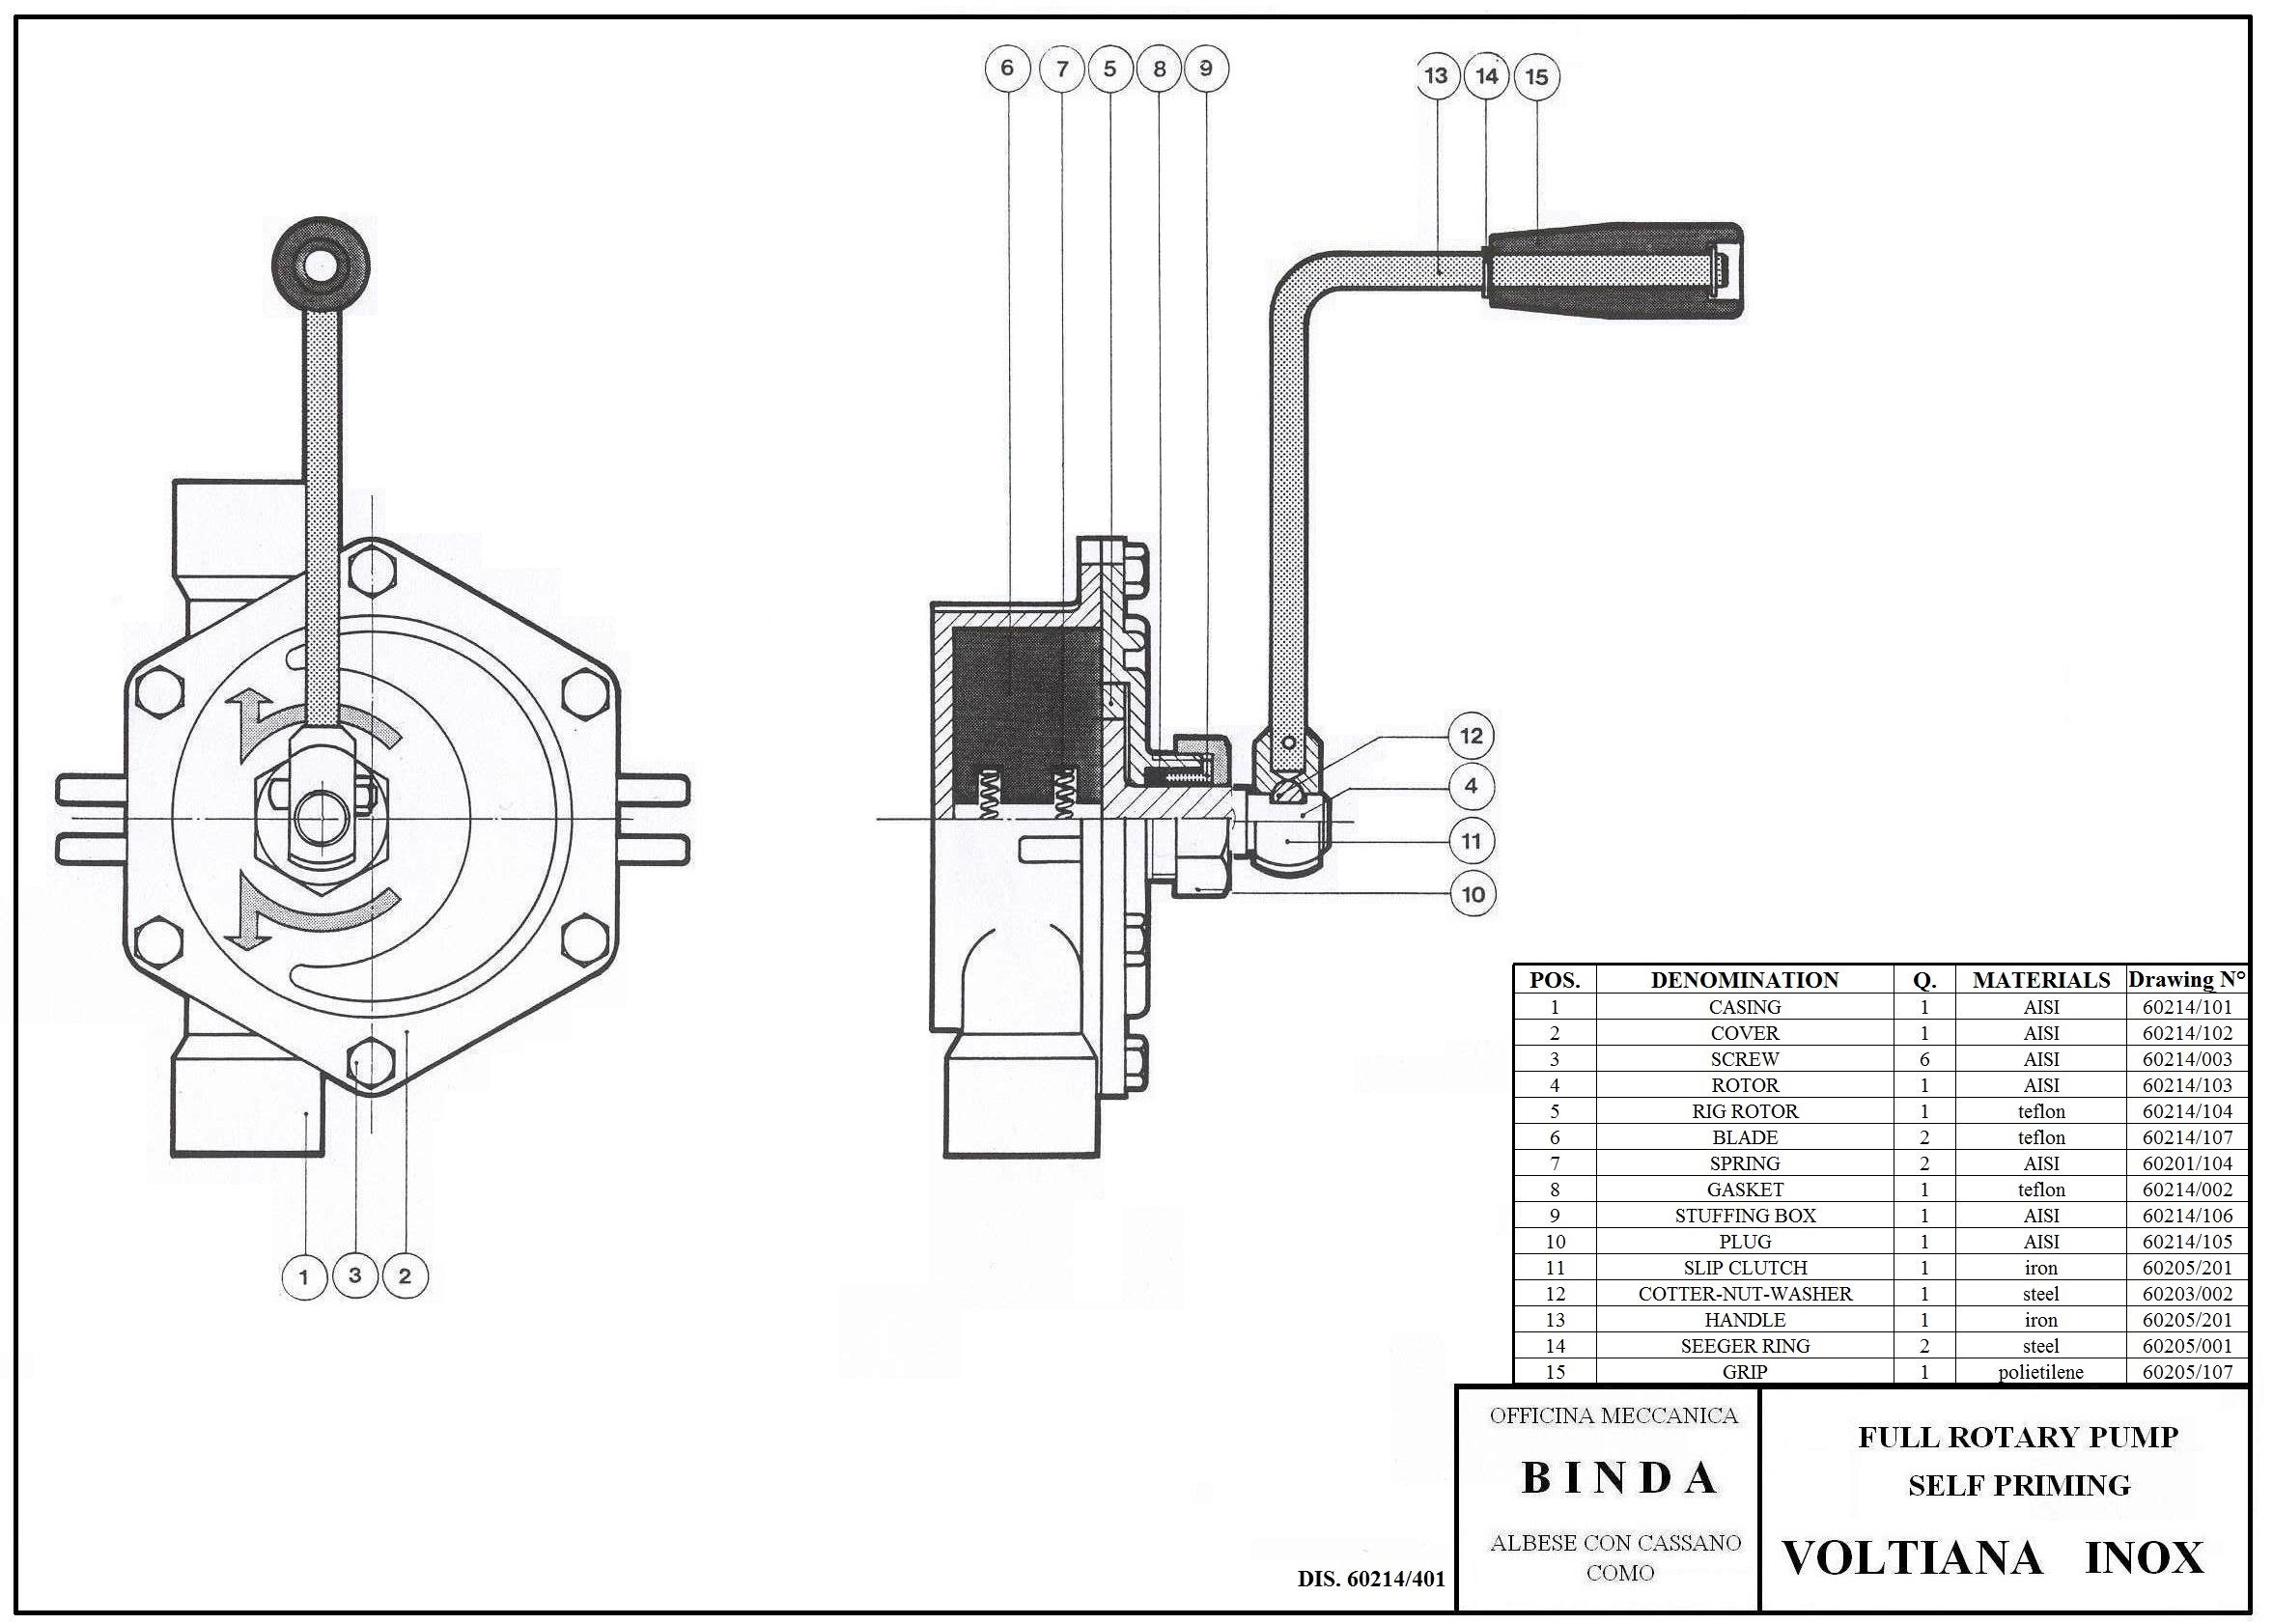 Binda Voltiana Inox Rotary Hand    Pump      Manual    Pump